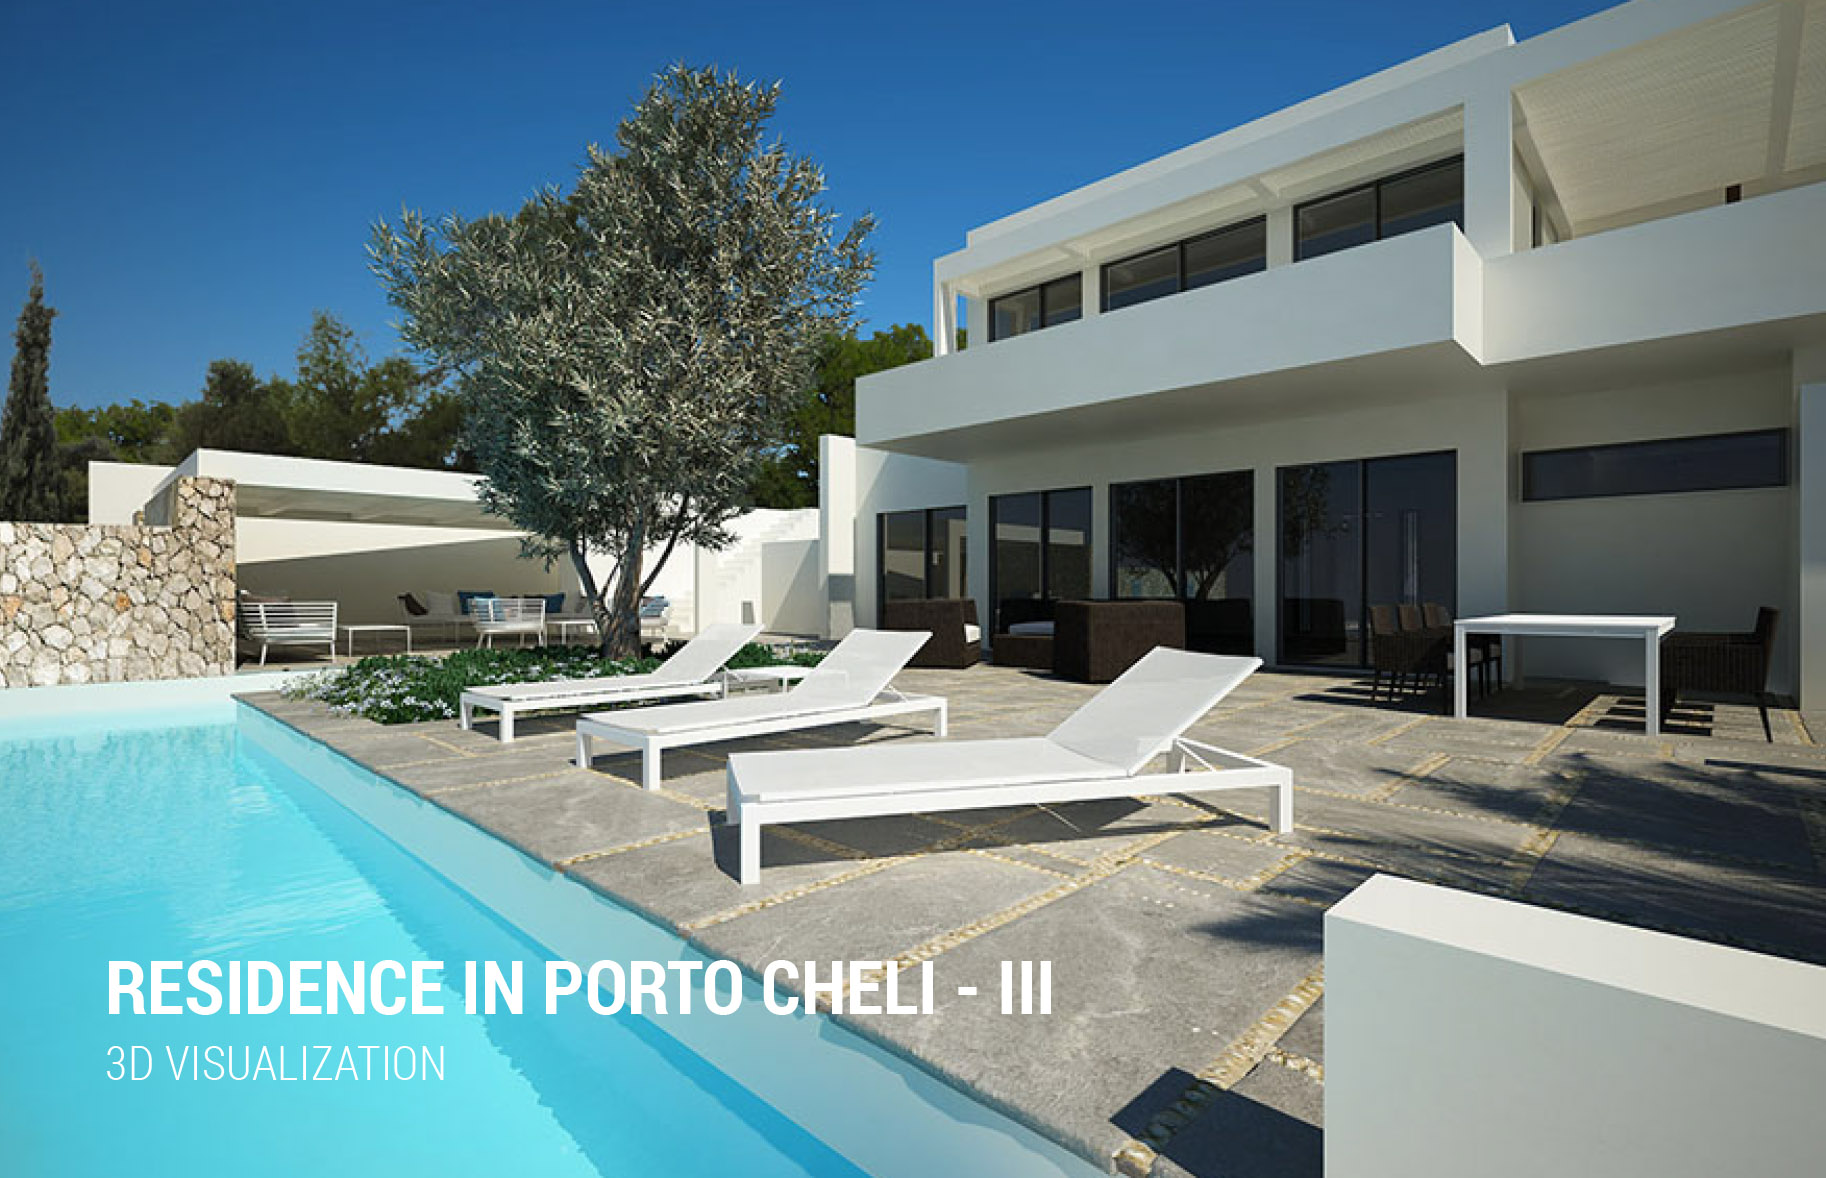 Schema Dimitra Chrona designer, creative director, architectural, 3D visualization, 3D Rendering, branding websites, digital, graphic design, interior design, real estate, luxury property, staging, museum, virtual, art, brochures, exhibitions, logotype, logo, Canada Quebec Montreal Athens Greece schema design porto cheli residence iii large.jpg